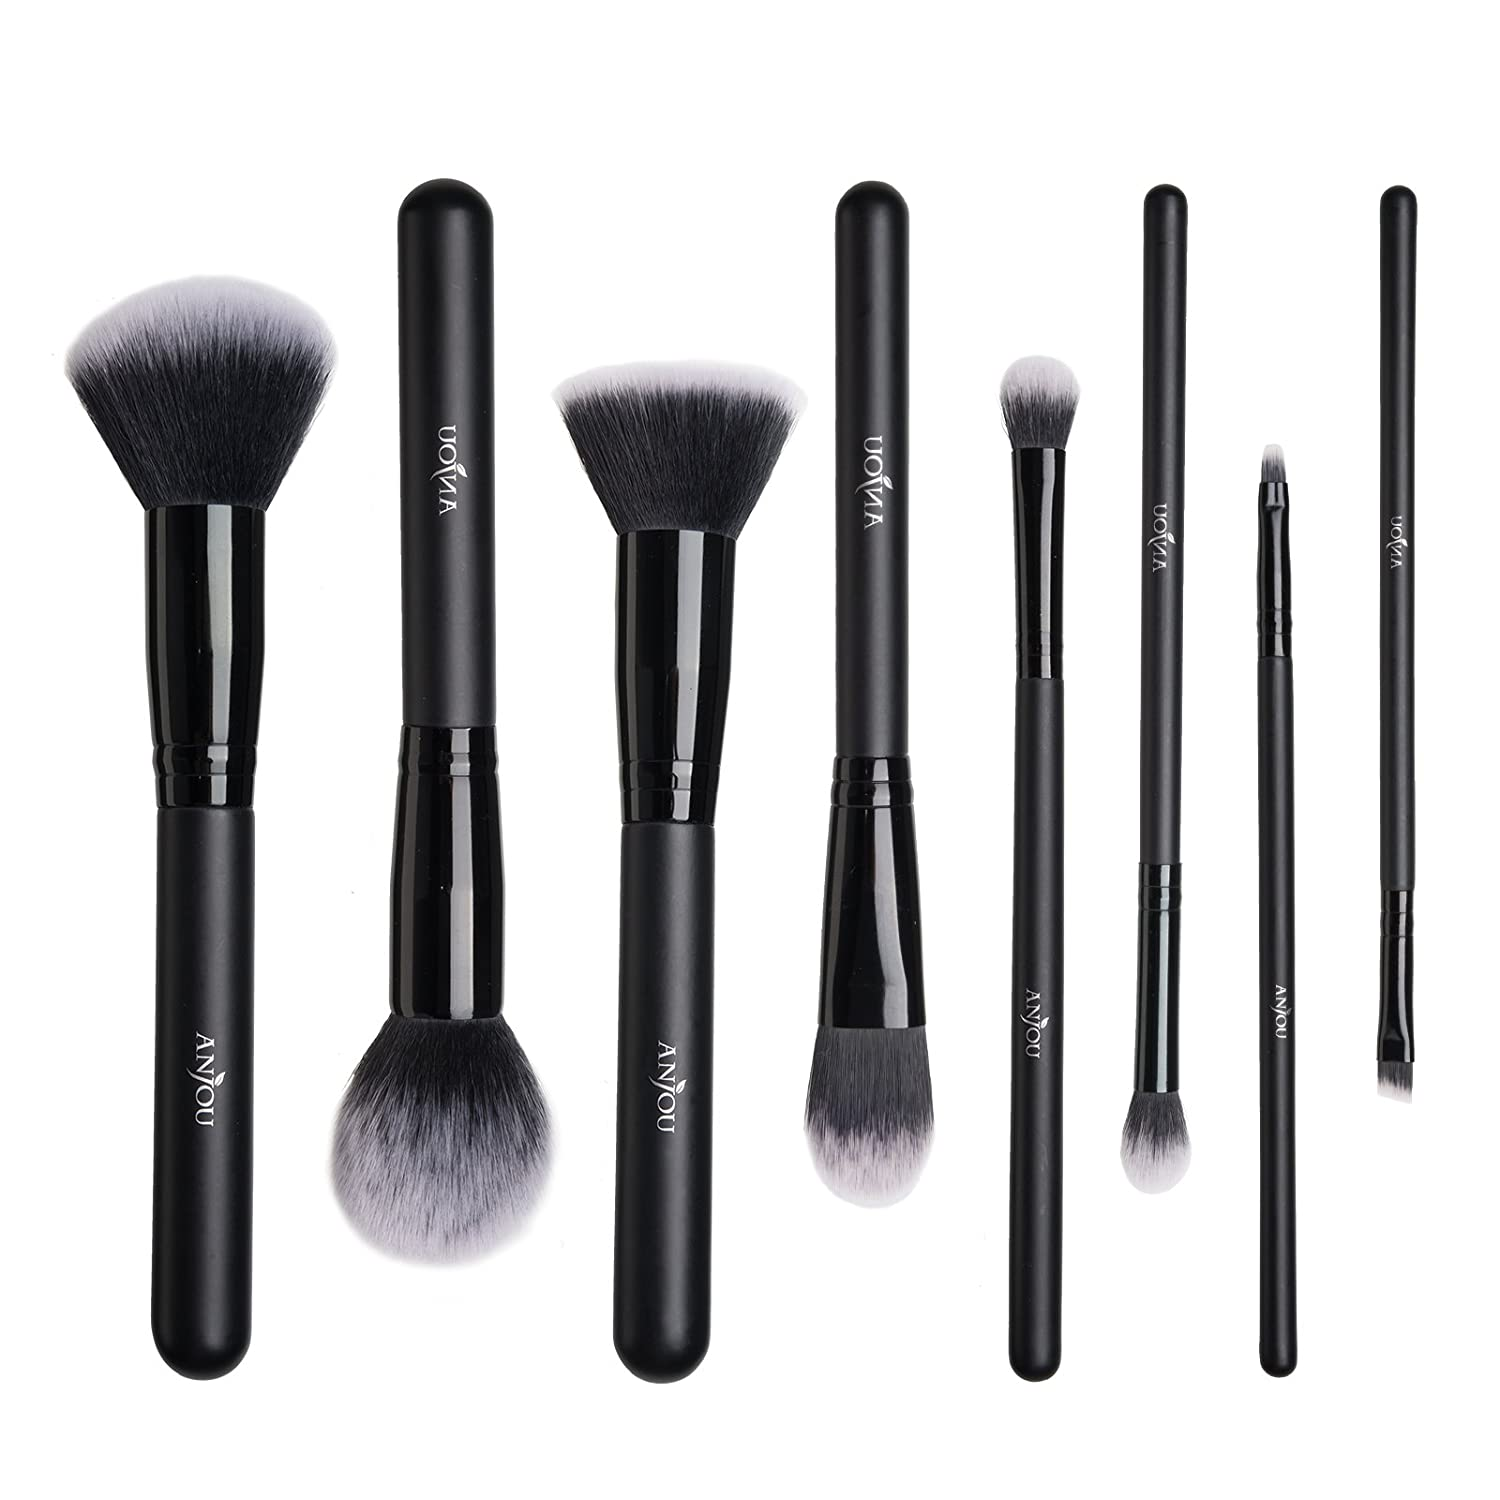 Makeup Brushes Set Anjou 8 Pieces Synthetic Makeup Brushes For All Look Foundation Blush Face Concealer Eyeliner Shadow Cosmetics Brush Set Waterproof Cosmetic Bag Included